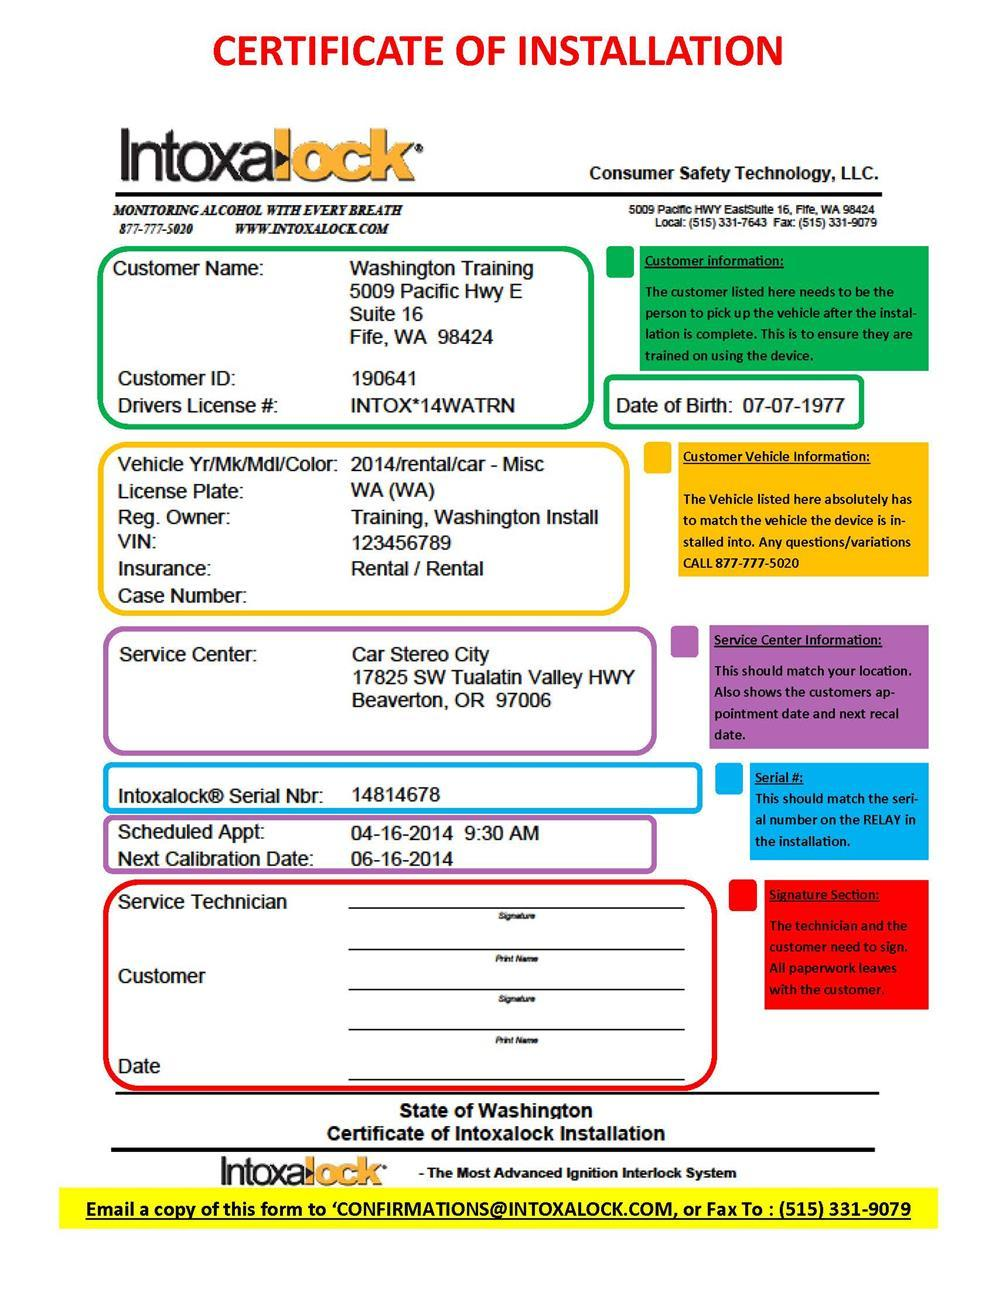 Intoxalock Certification Guide Pdf January 2014 Wiring Diagram Remote Control Sample Certificate Of Installation